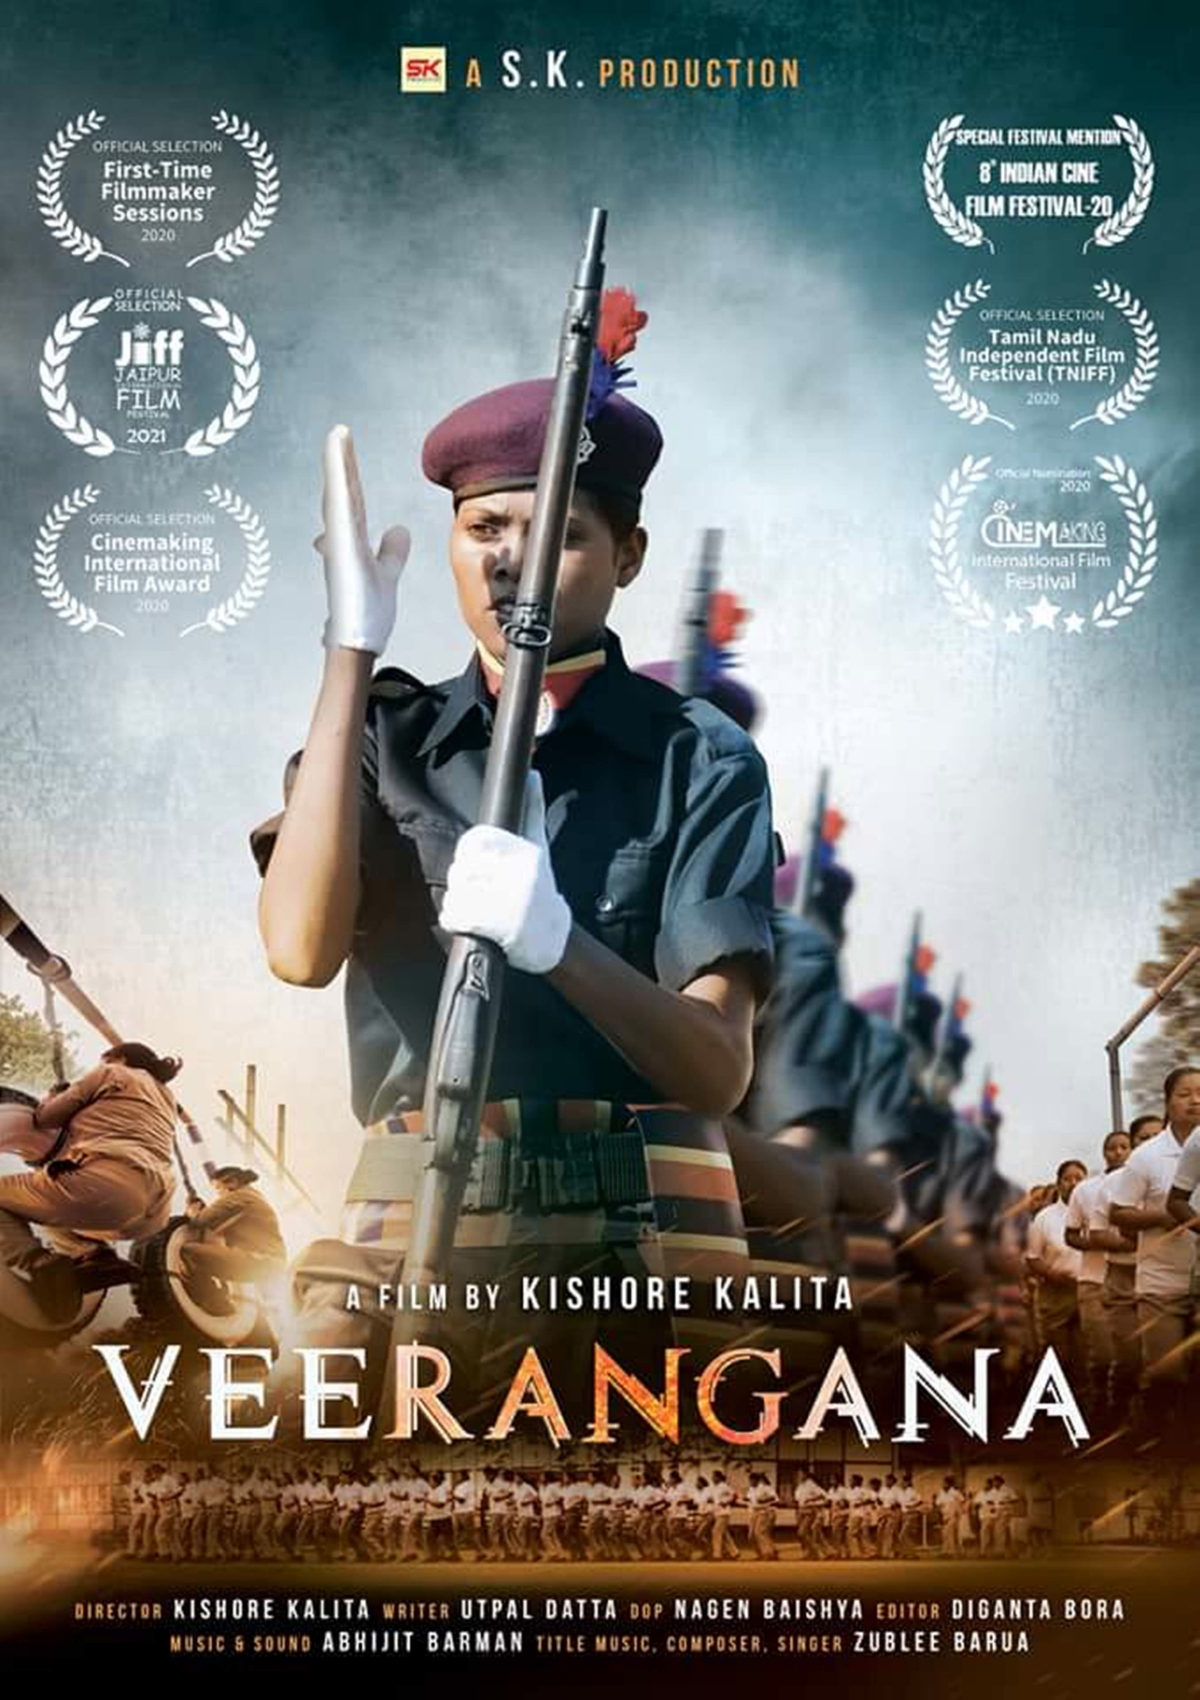 Poster-still of Veerangana